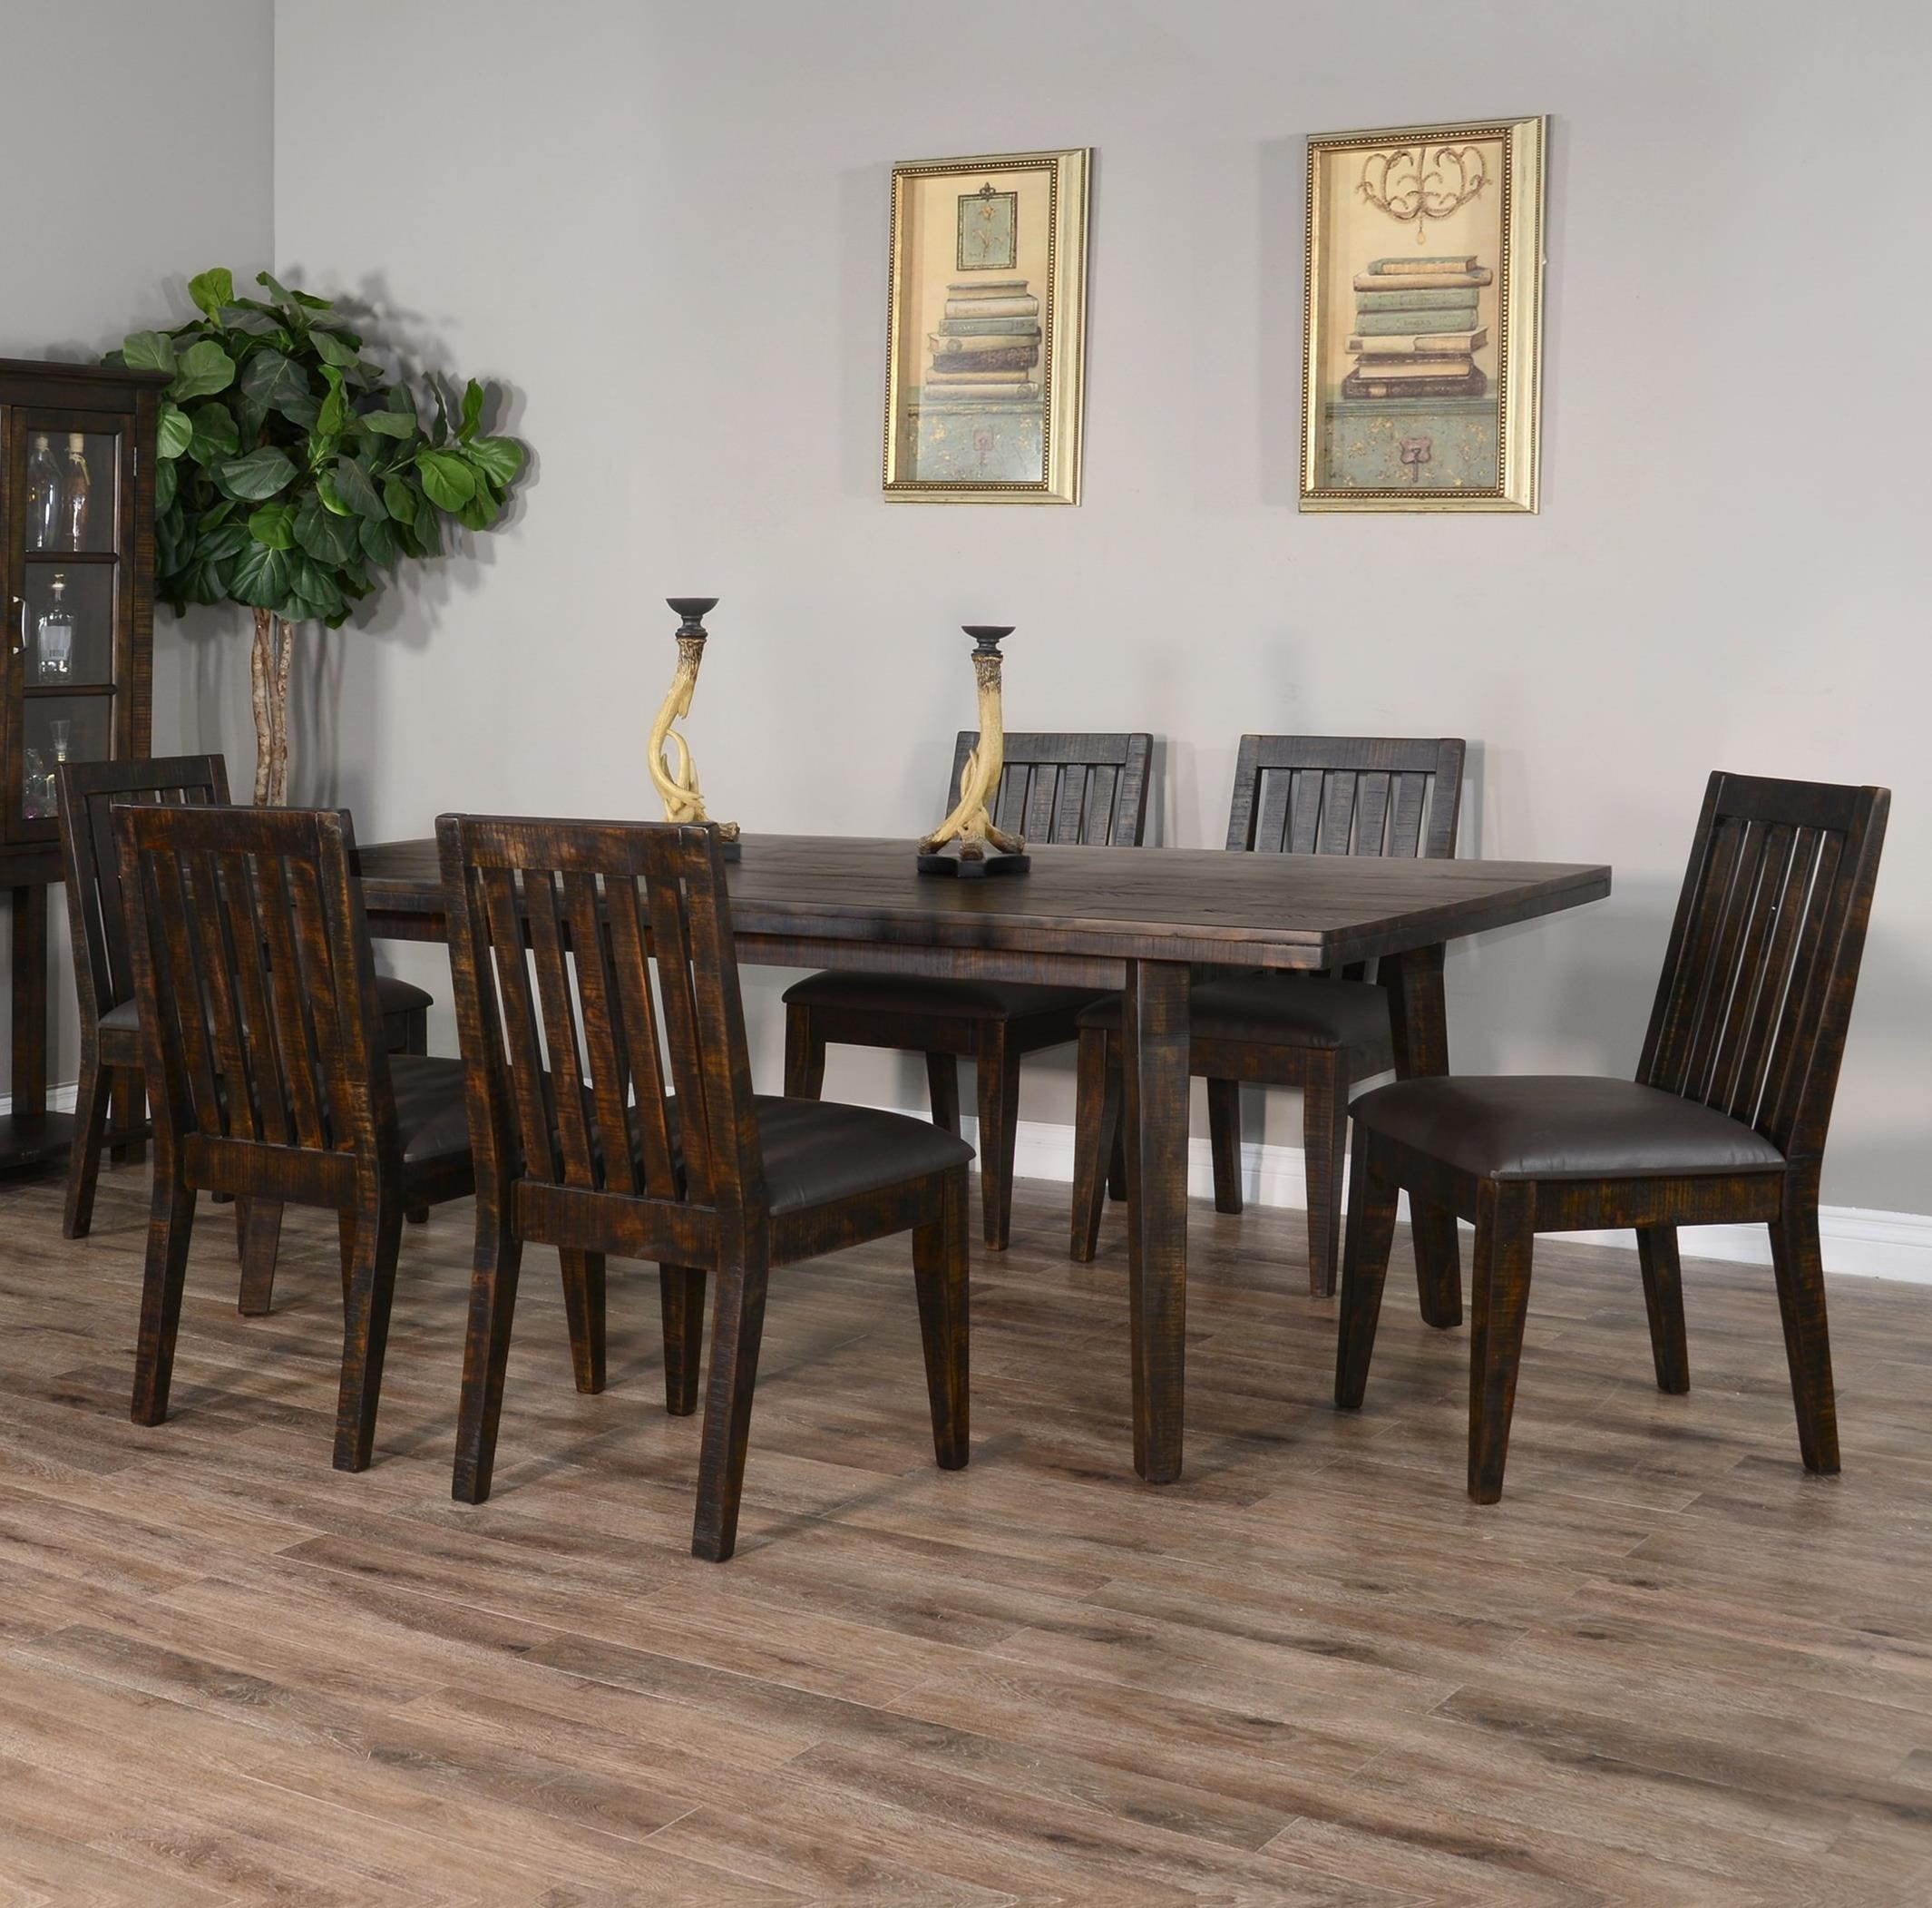 Nassau 7-Piece Table Set by Sunny Designs at Sparks HomeStore